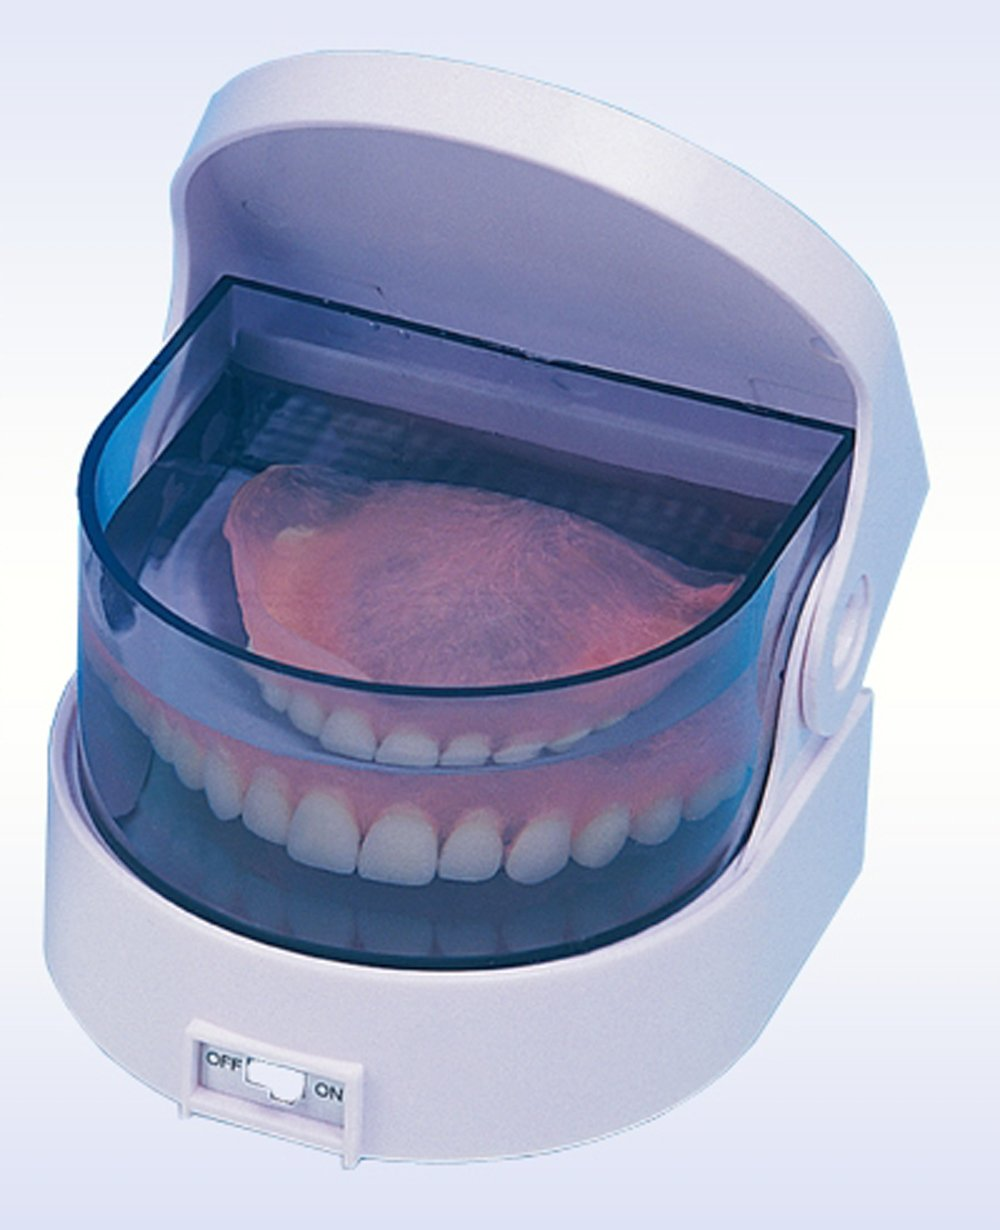 Sonic Cordless Denture Cleaner Portable Battery Operated Vibrating Jewelry Coins Cleaning Machine